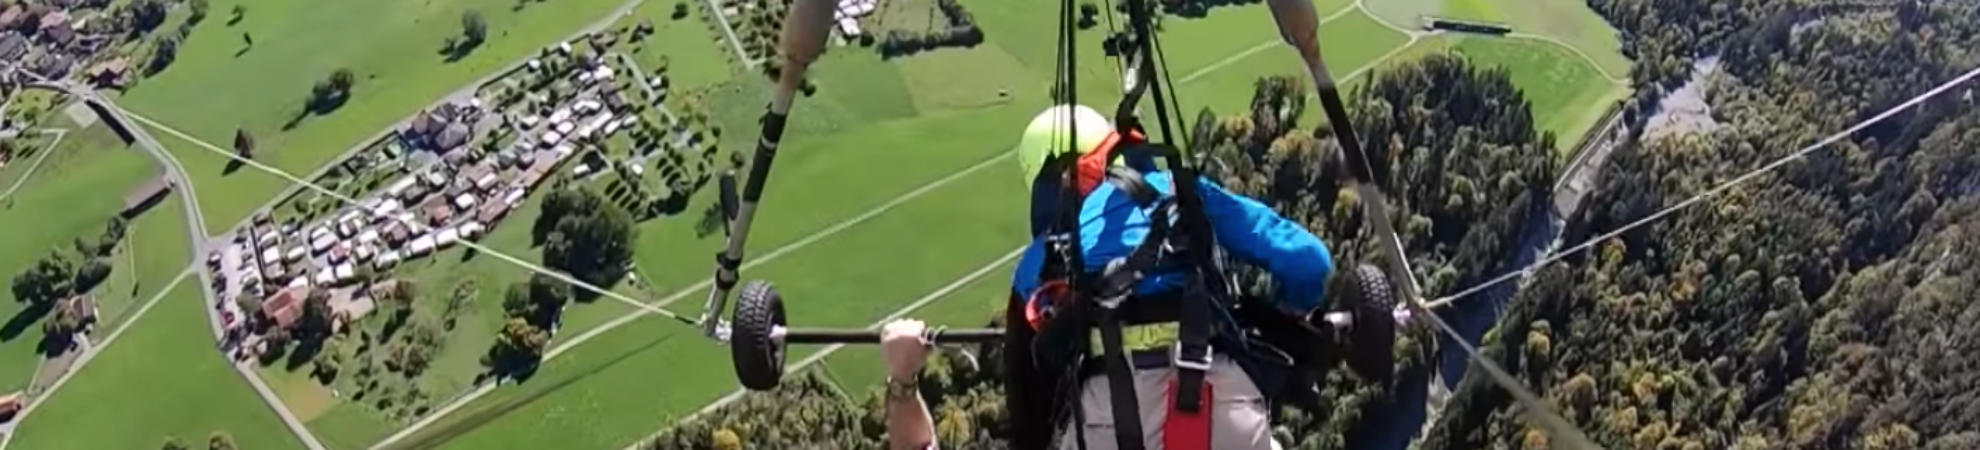 hang-gliding accident